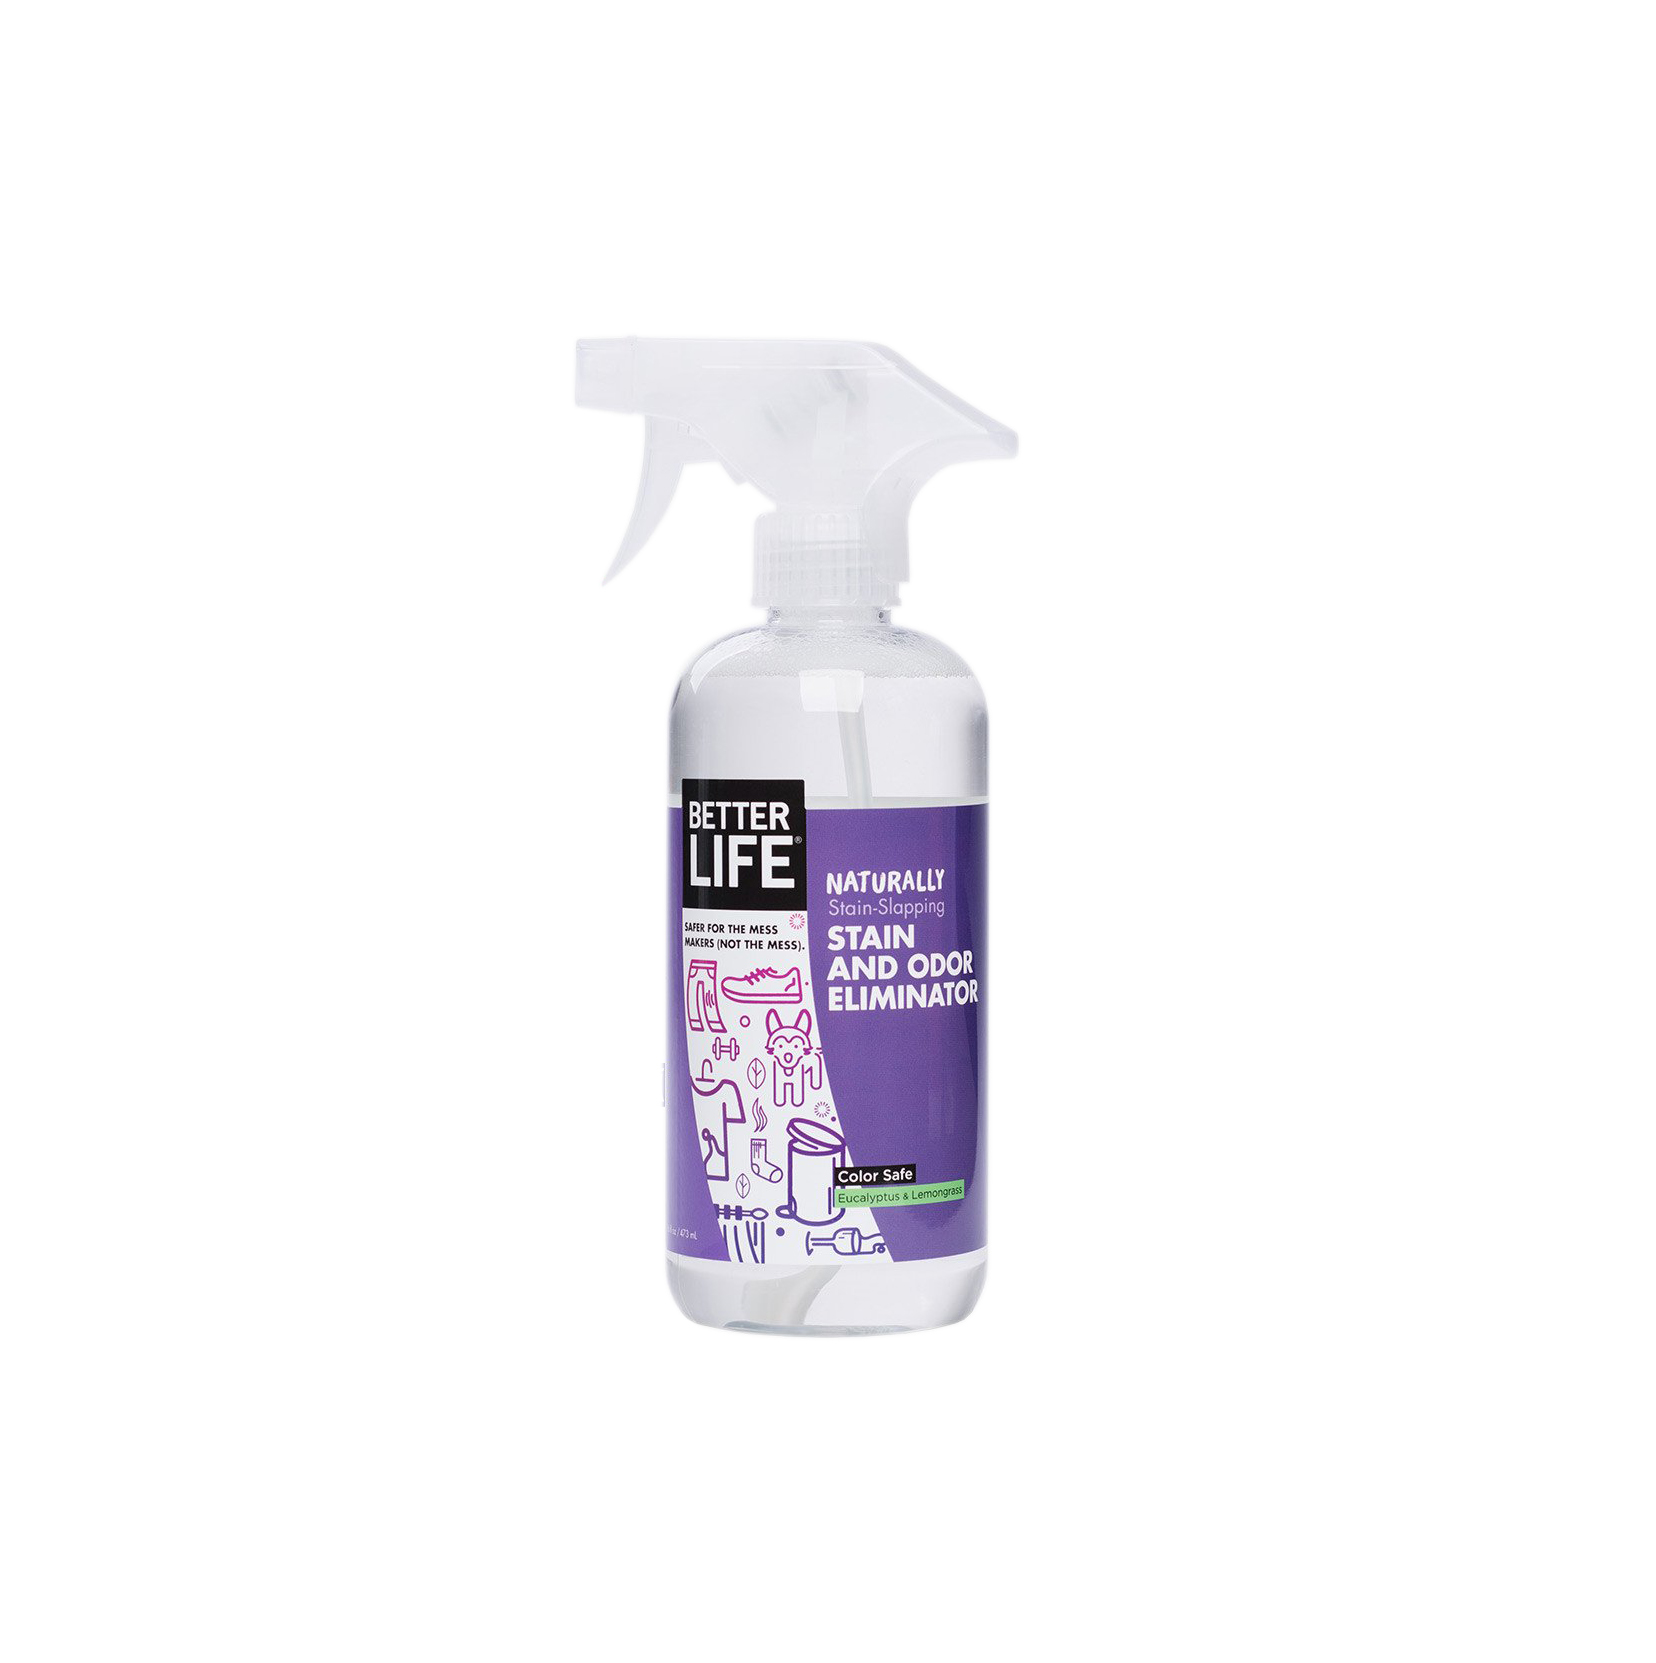 Better Life Stain and Odor Eliminator